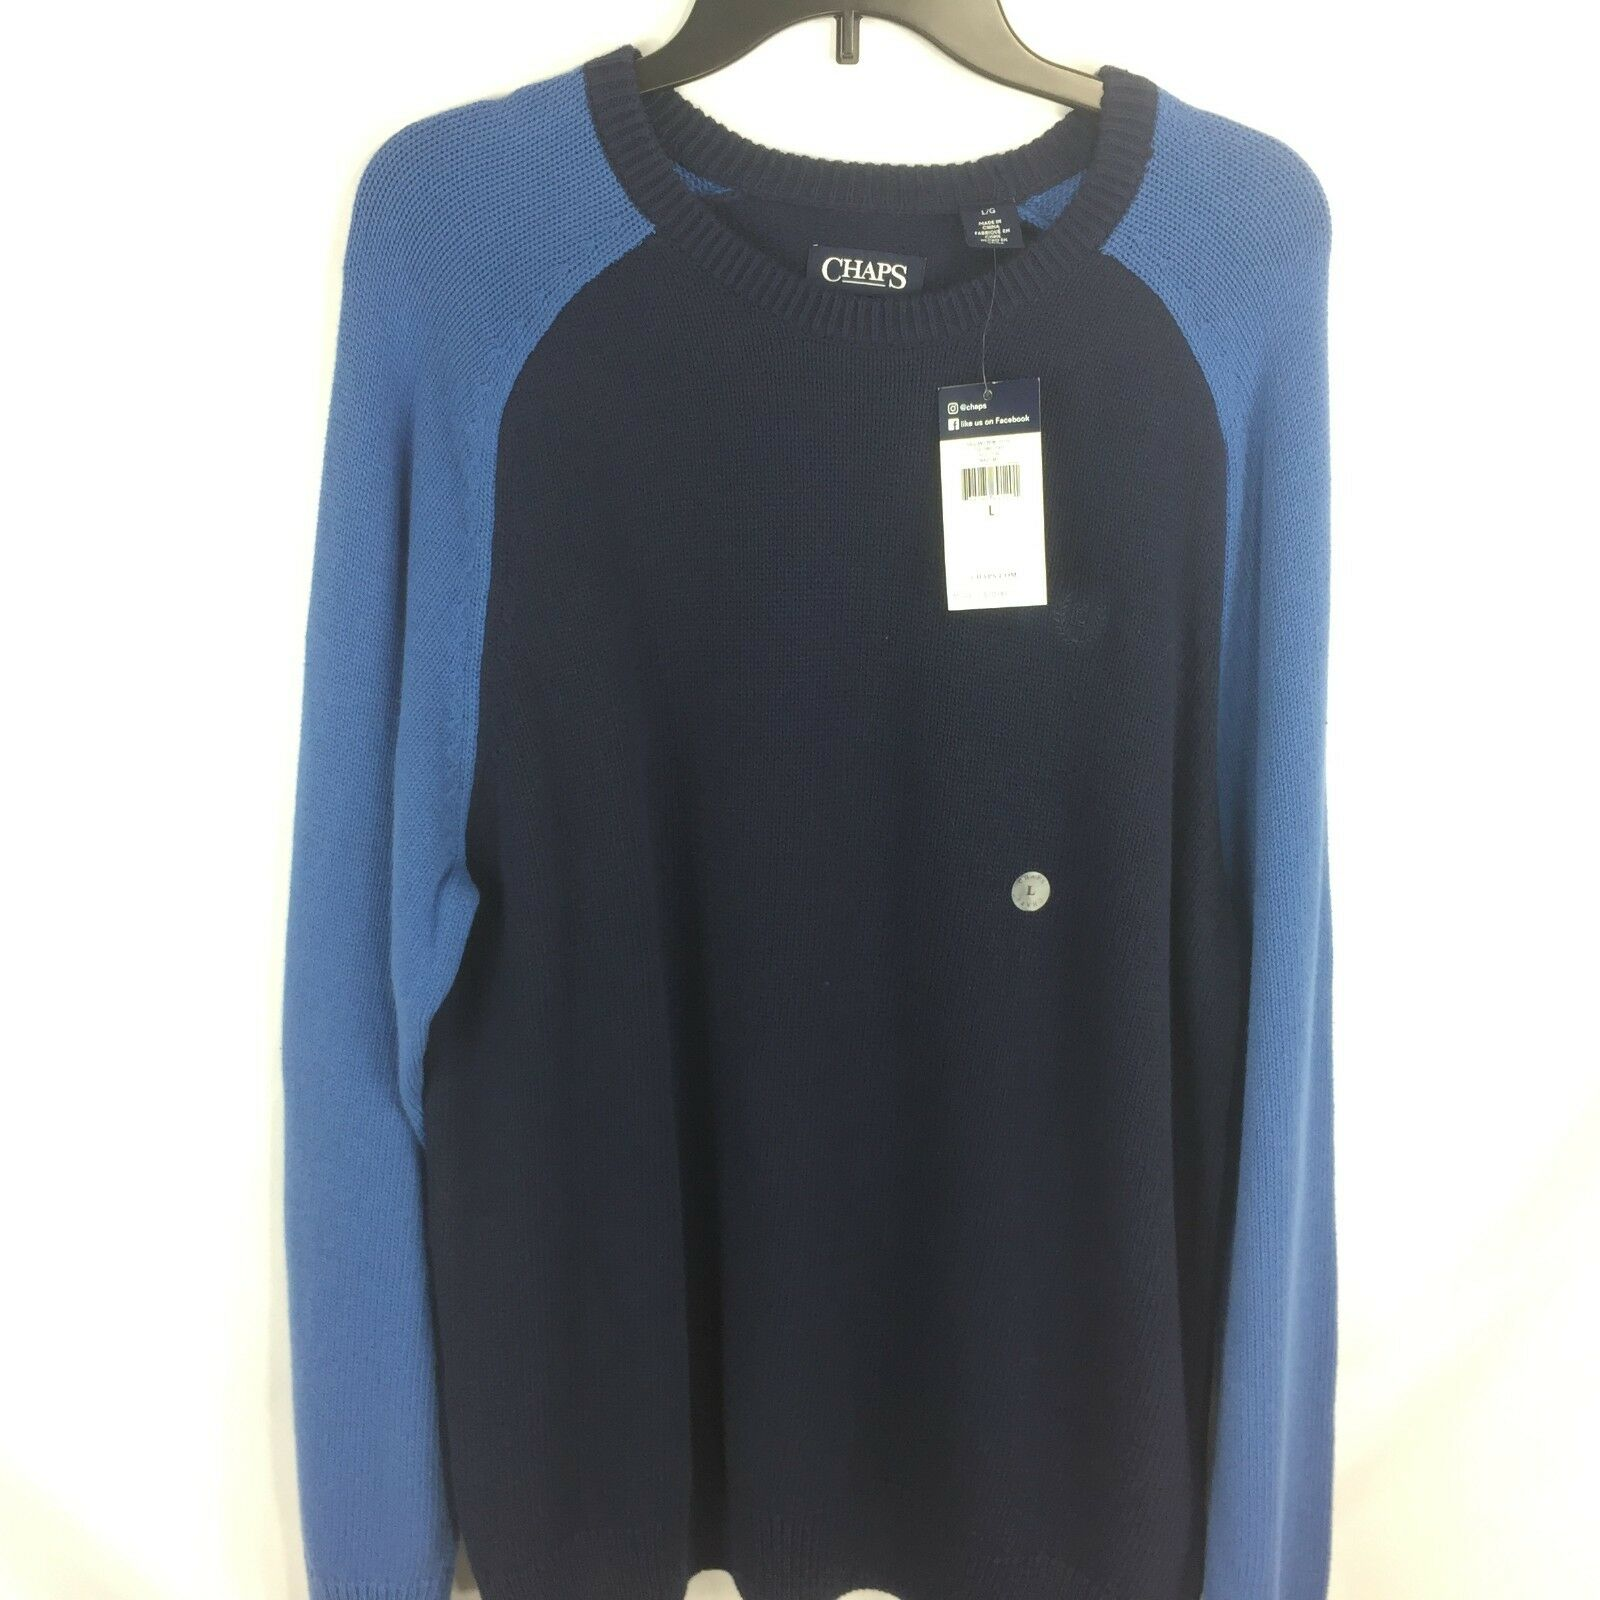 CHAPS - 2 Shade Navy   bluee Long Sleeve Cotton Sweater size L Mens NEW